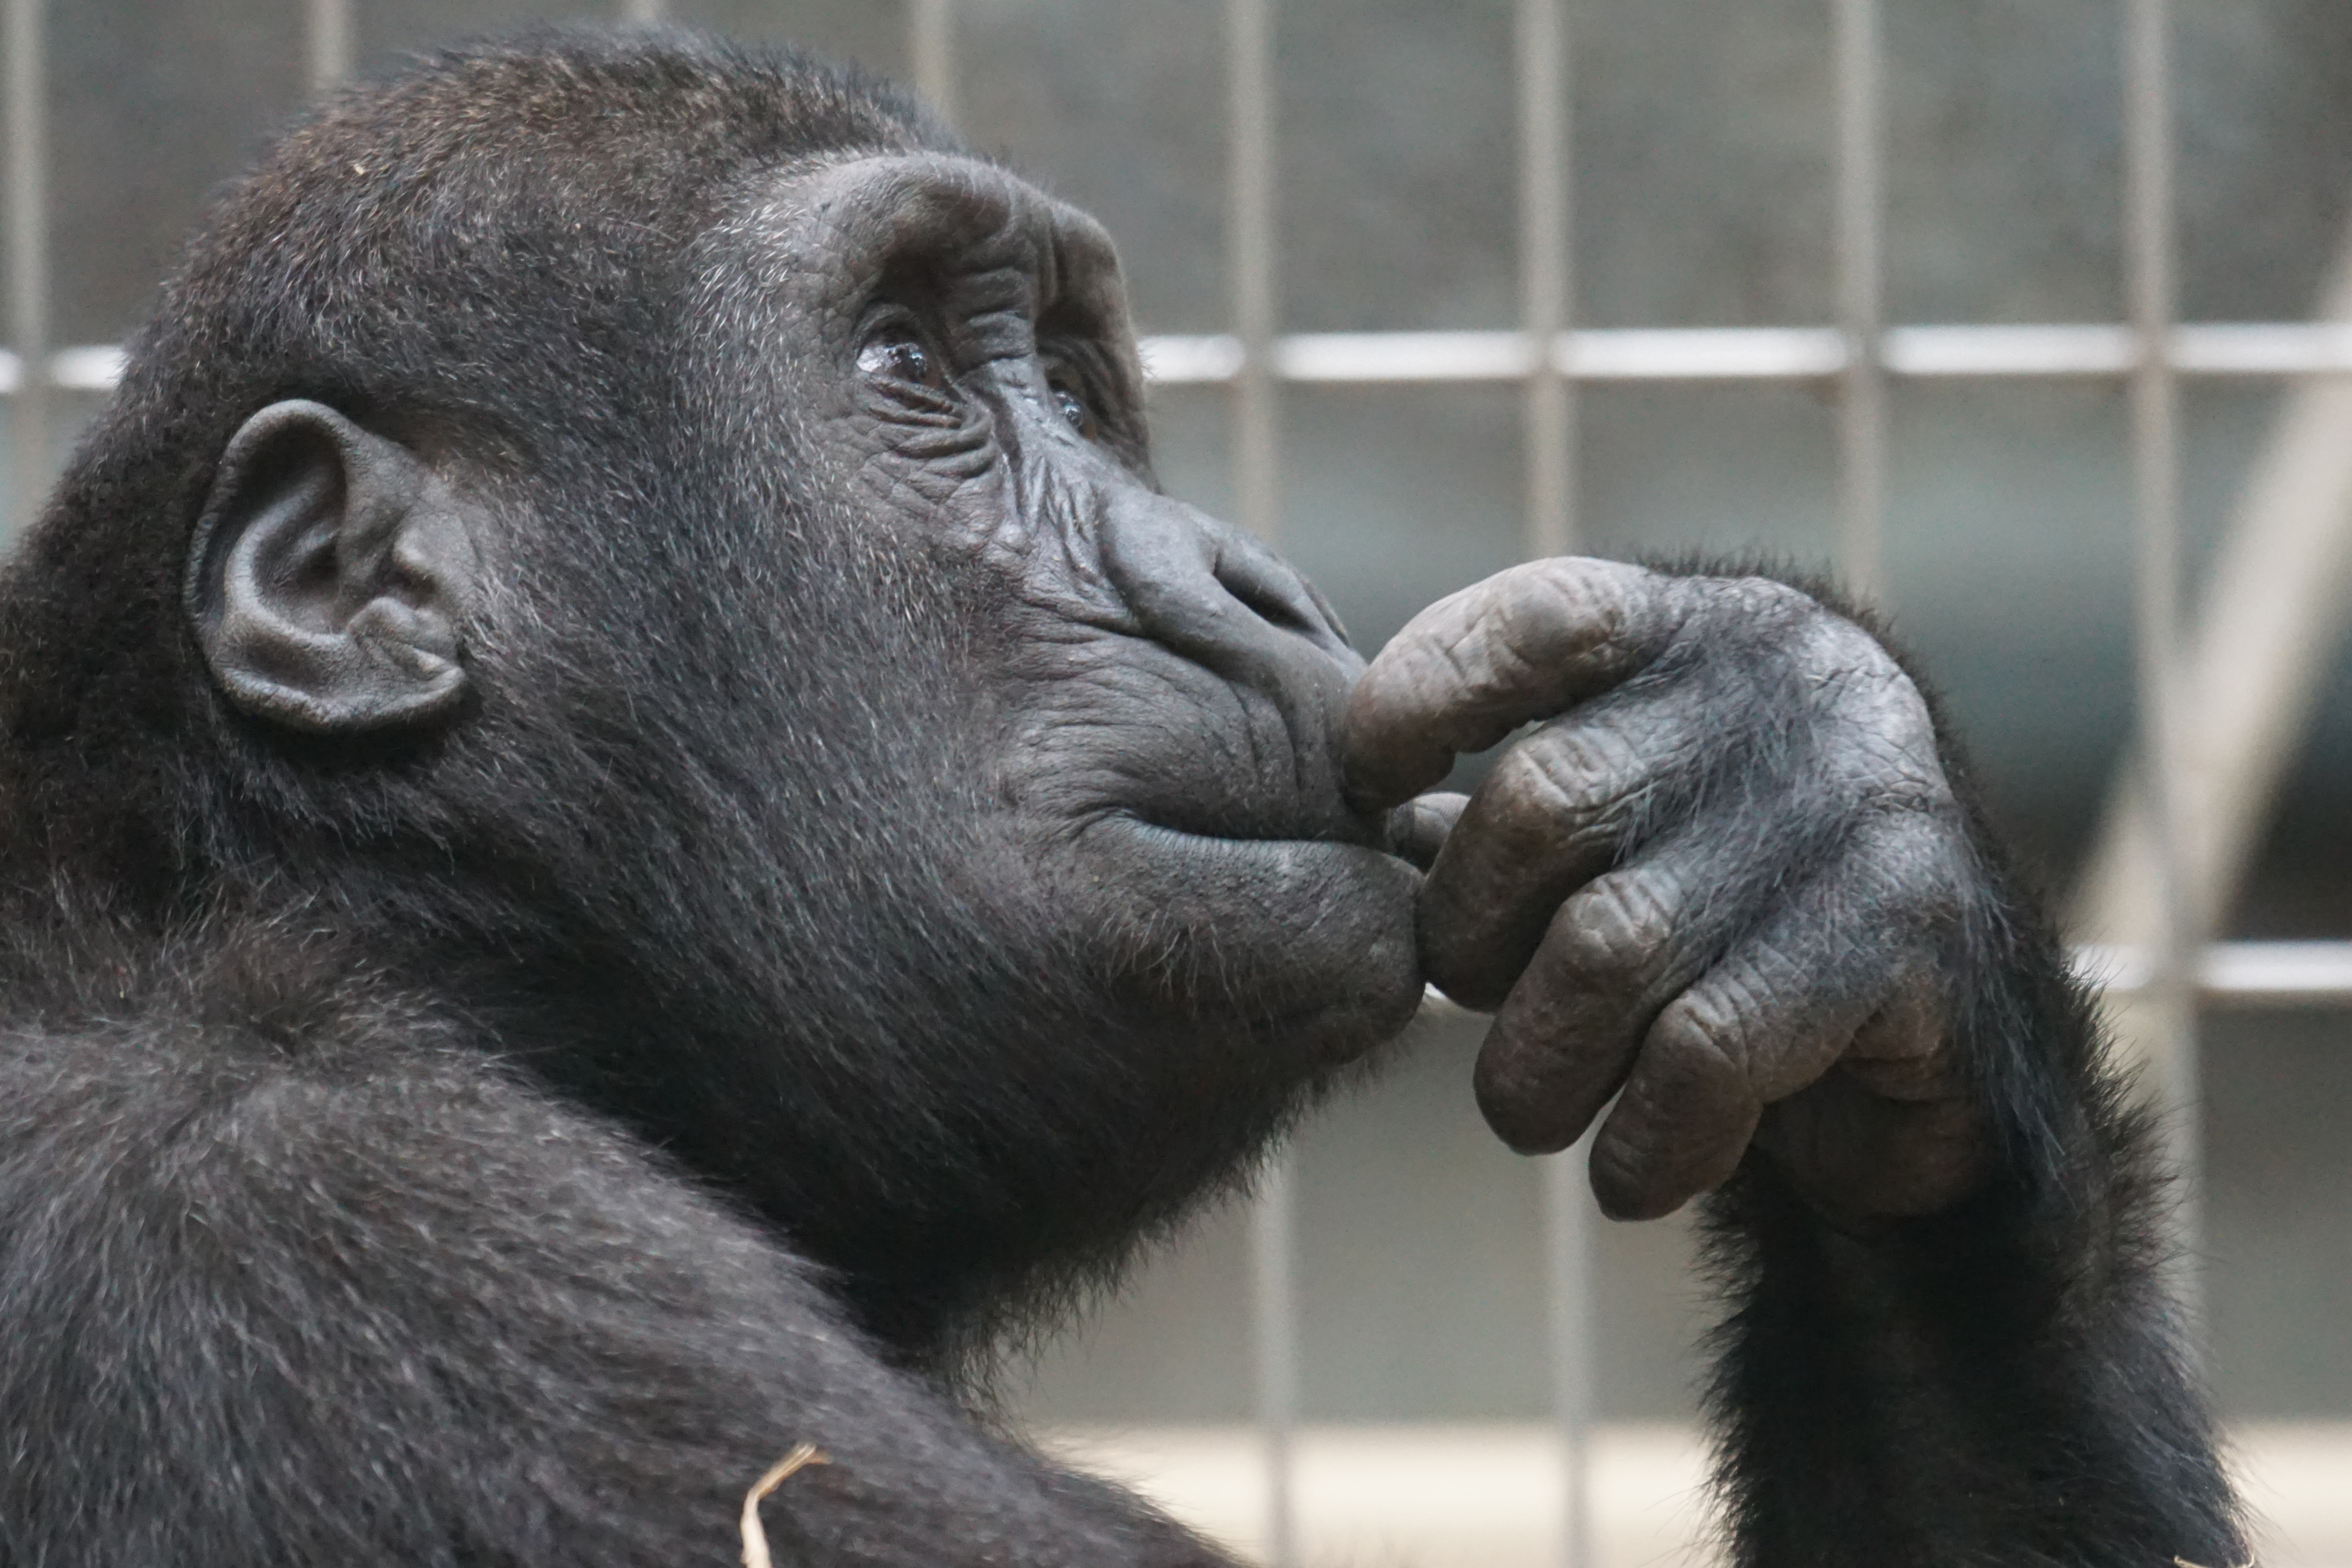 One of Us | Can (non-human) animals know their own existence?